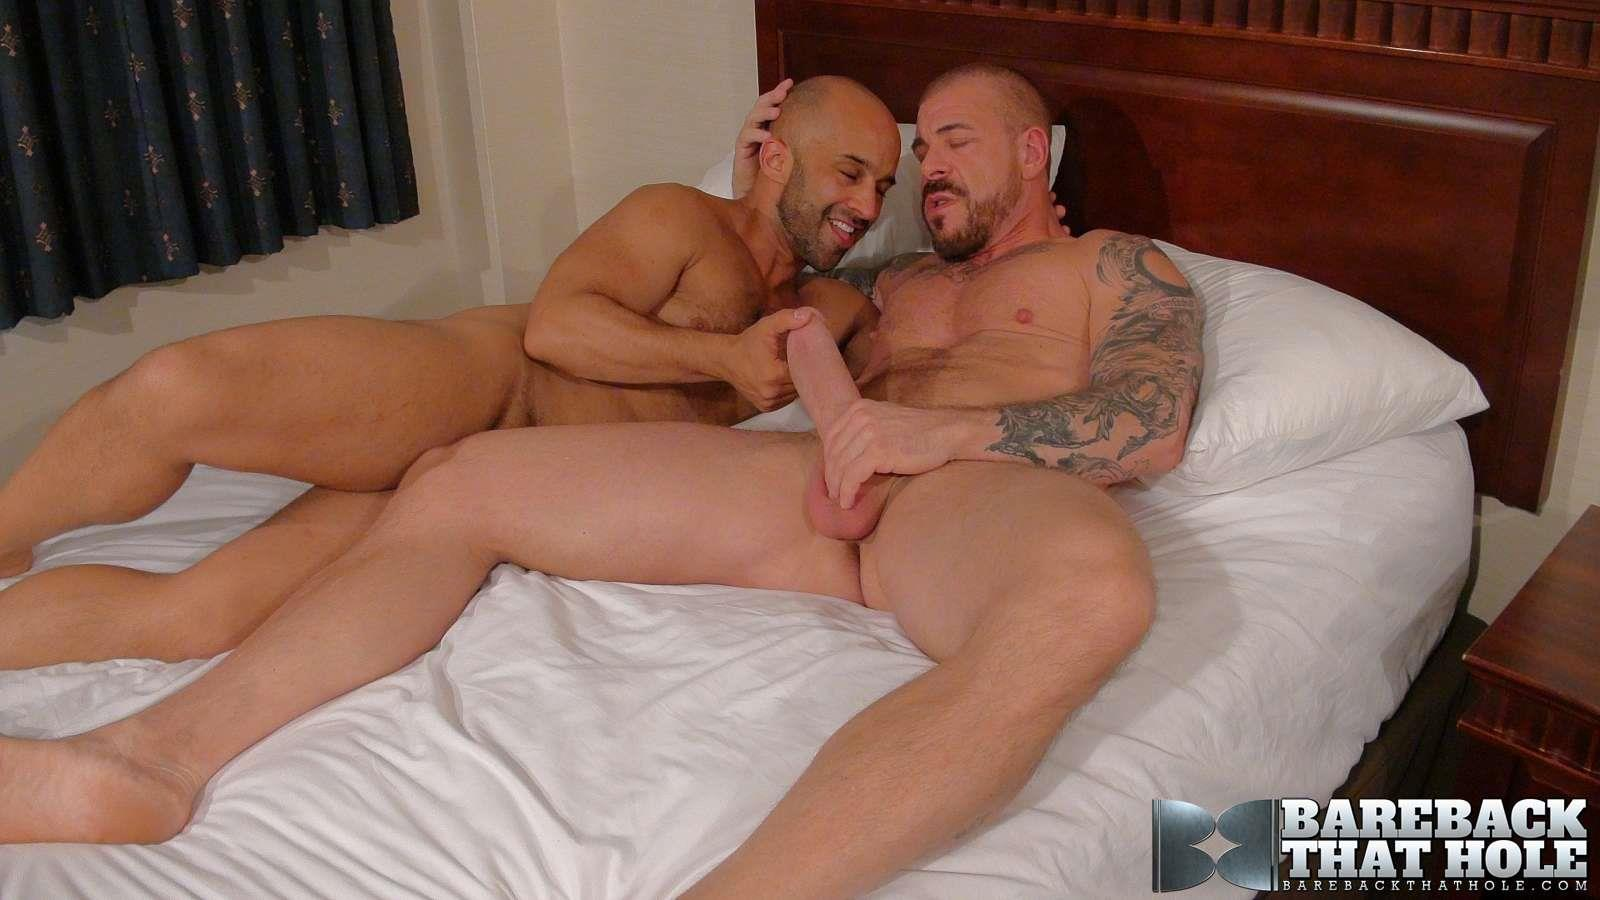 Bareback That Hole Bareback That Hole Rocco Steele and Igor Lukas Huge Cock Barebacking A Tight Ass Amateur Gay Porn 01 Rocco Steele Tearing Up A Tight Ass With His Huge Cock